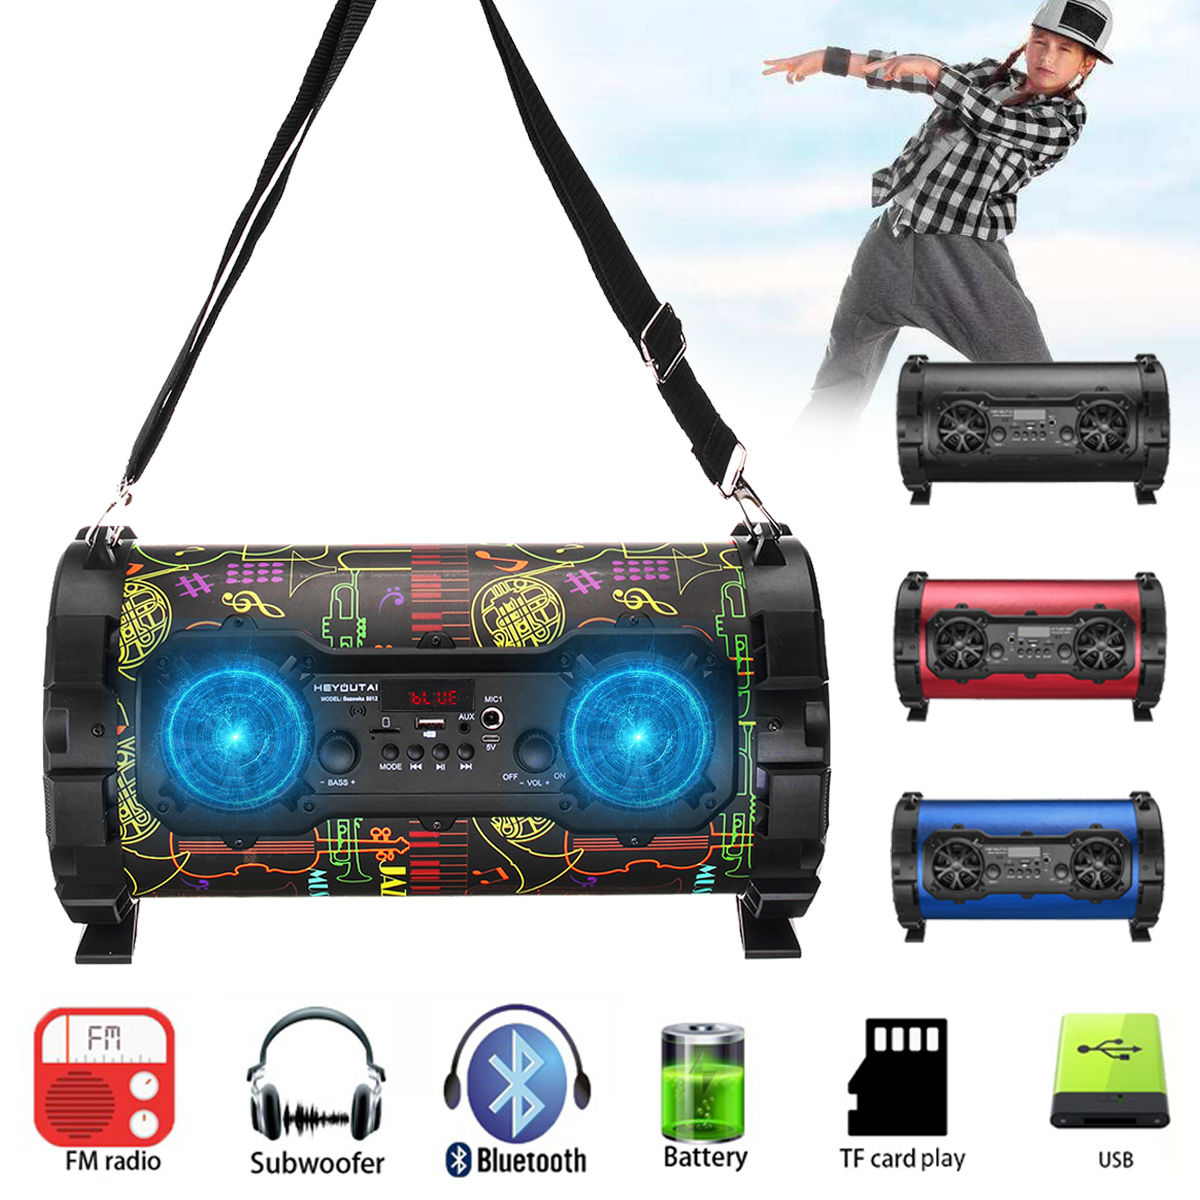 25W Wireless Bluetooth Speaker Stereo Bass Portable Loudspeaker Sound System AUX/USB/TF Card/FM Radio Outdoor Speaker Subwoofer p80 panasonic air plasma cutter torch consumables plasma tips nozzles 60 80 100amp plasma electrodes 60pk